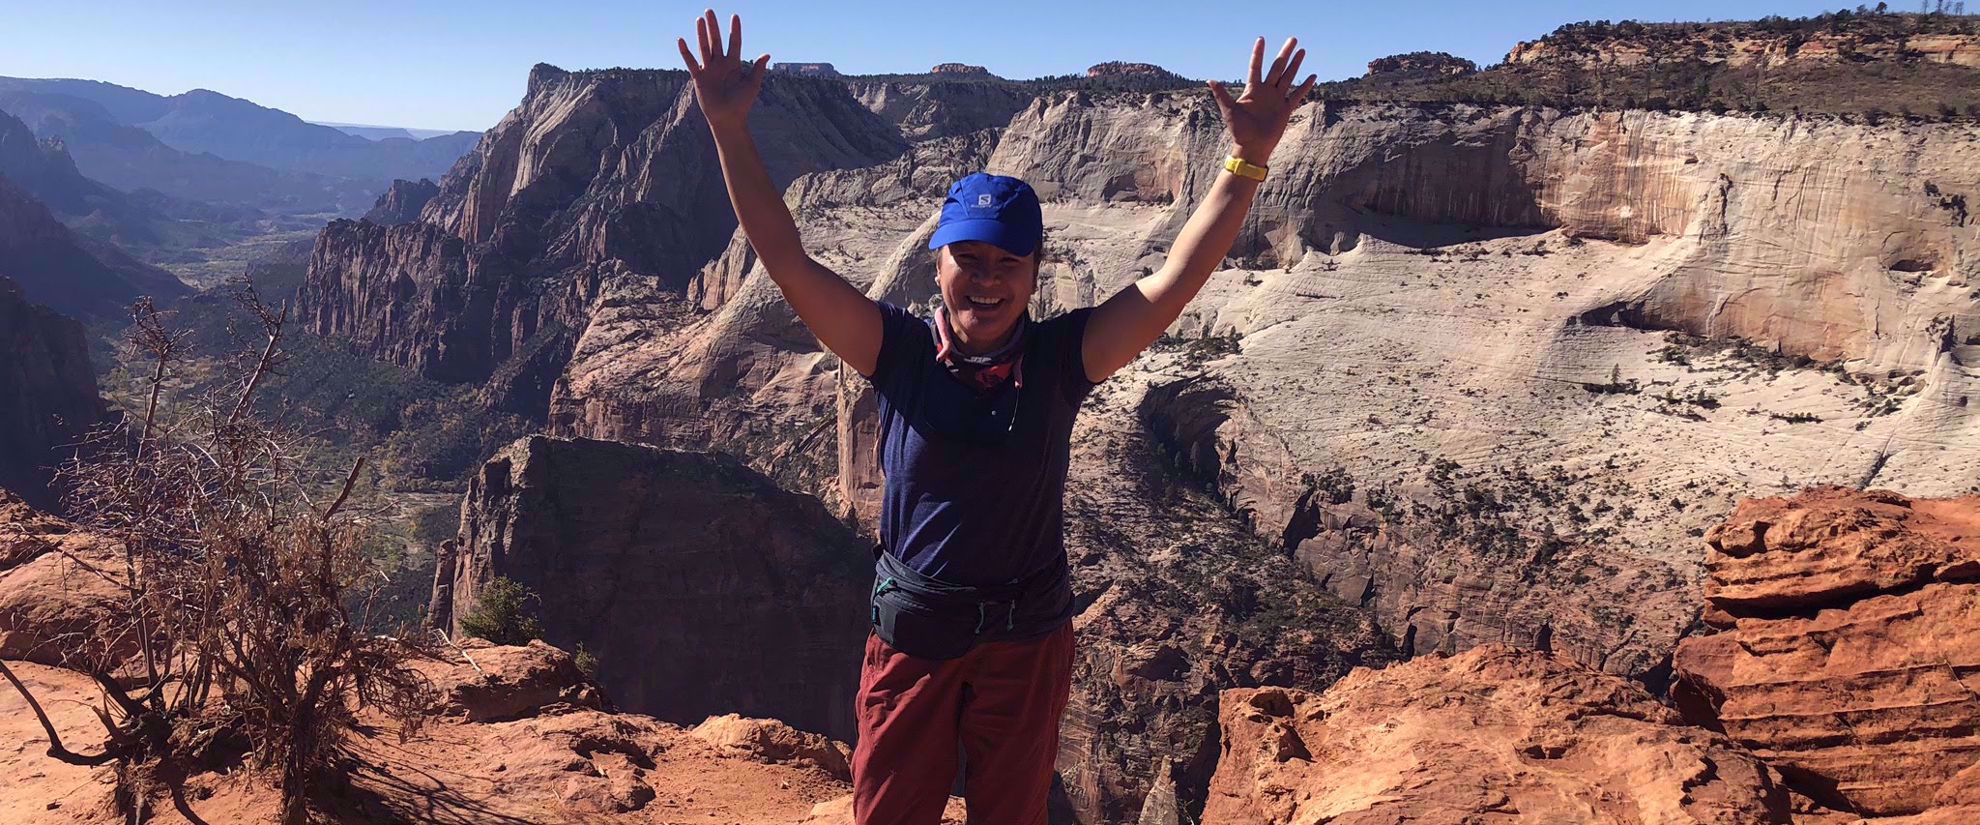 woman smiles after finishing hike in utah